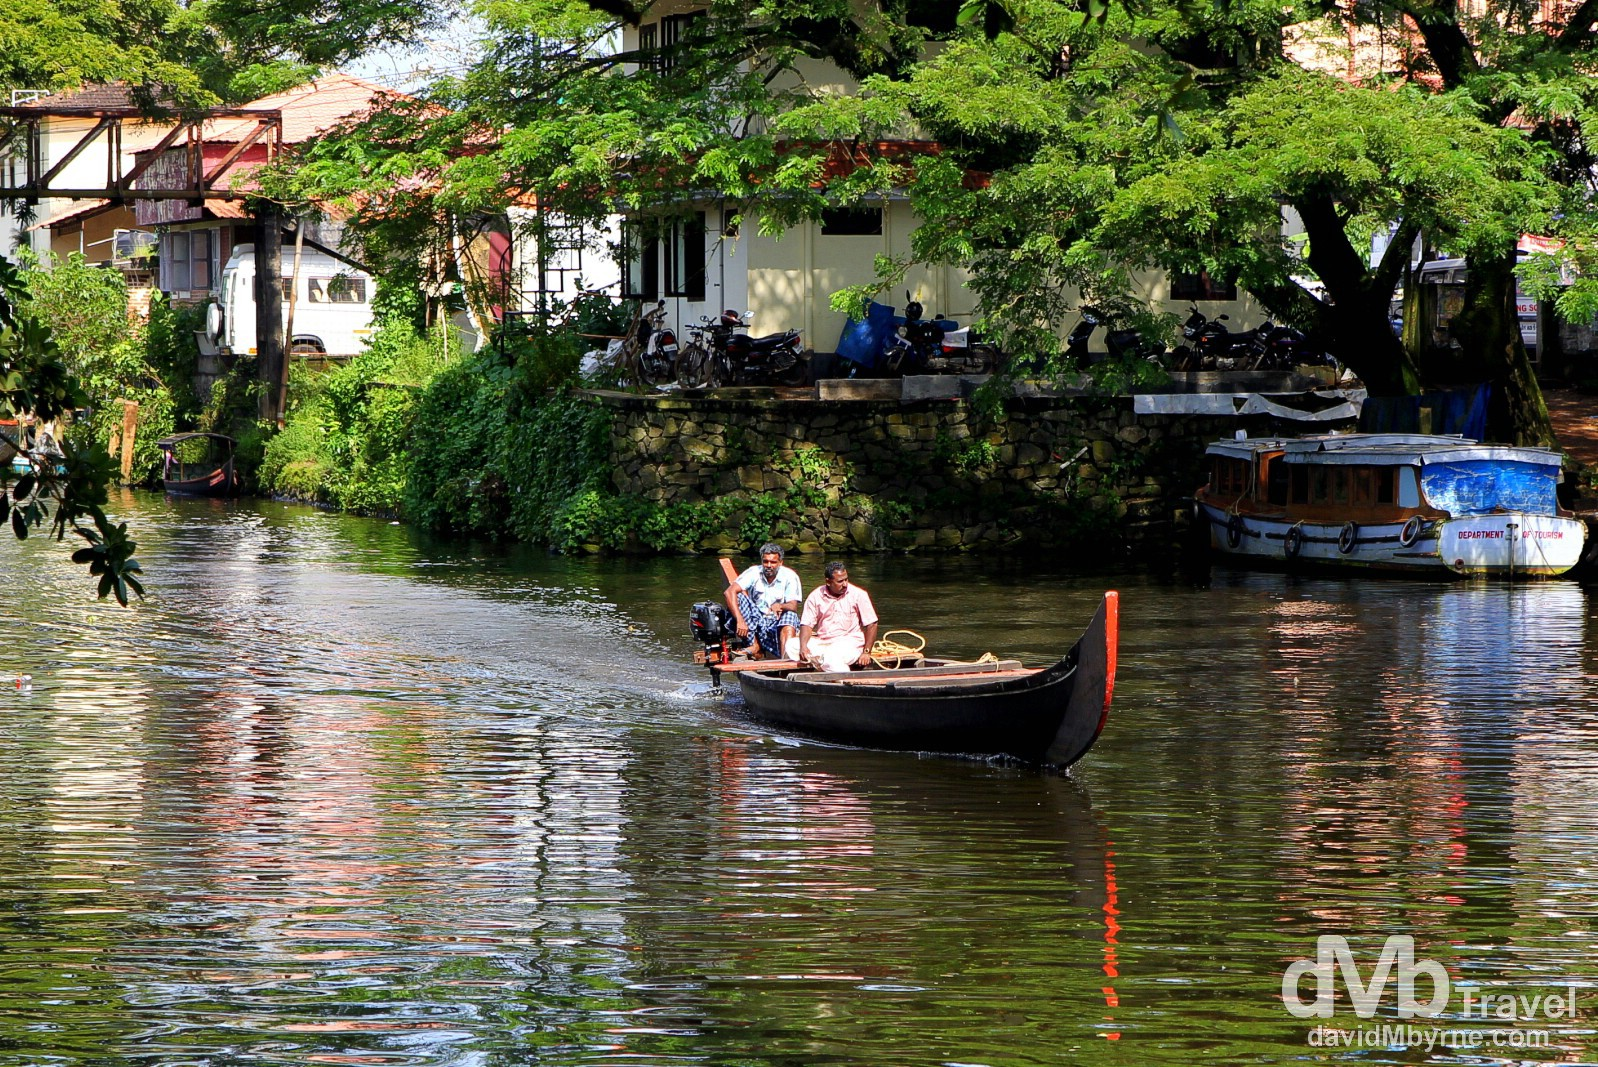 Waterways in Alleppey, Kerala, India. September 17th 2012.